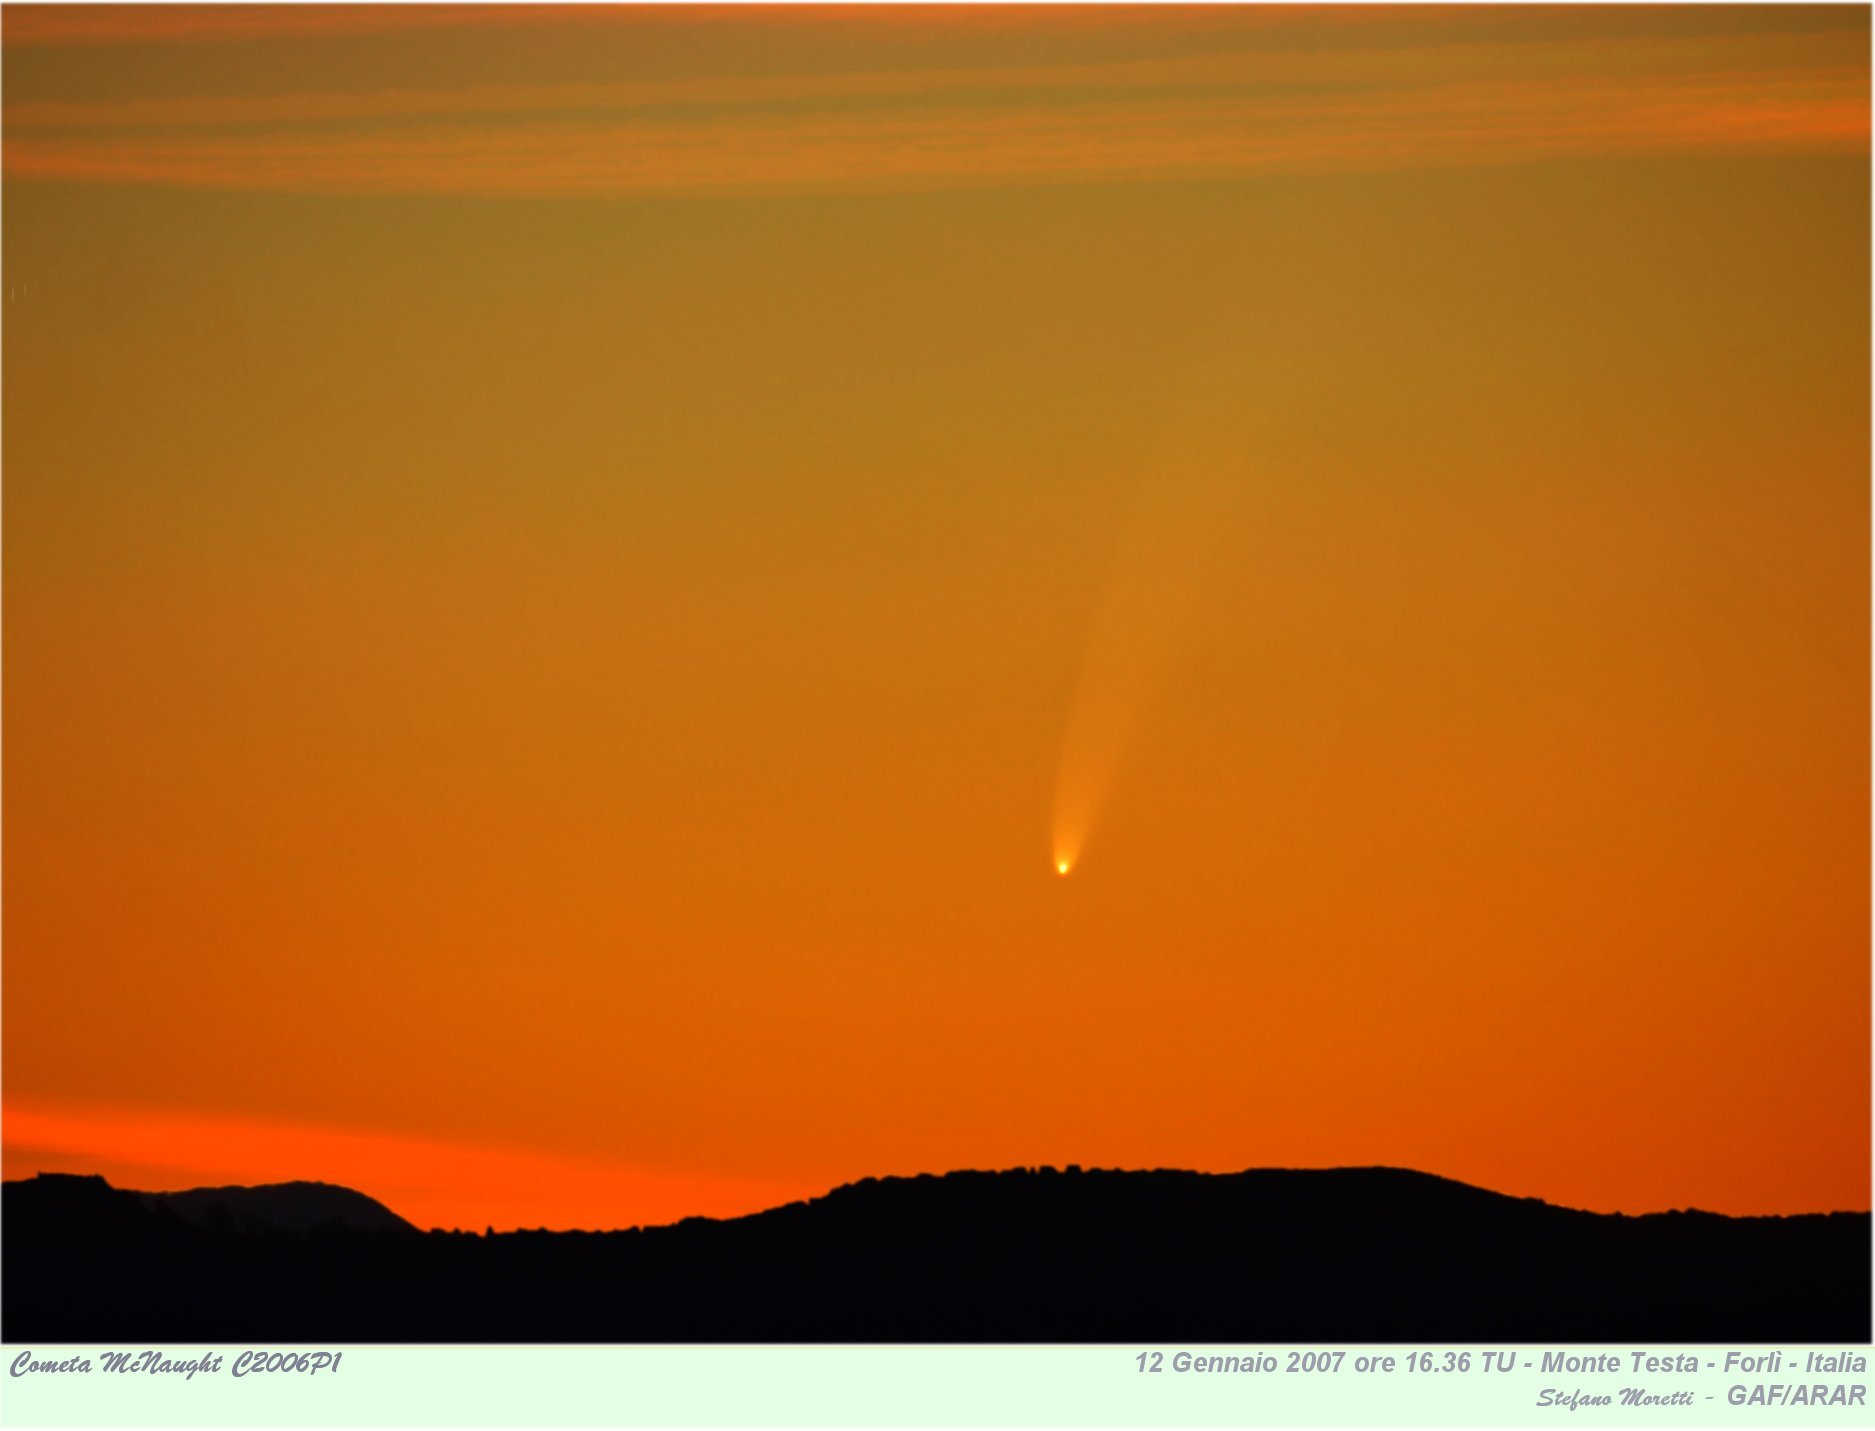 Comet_mcnaught_20070112_tramonto_scritte.jpg (125152 byte)